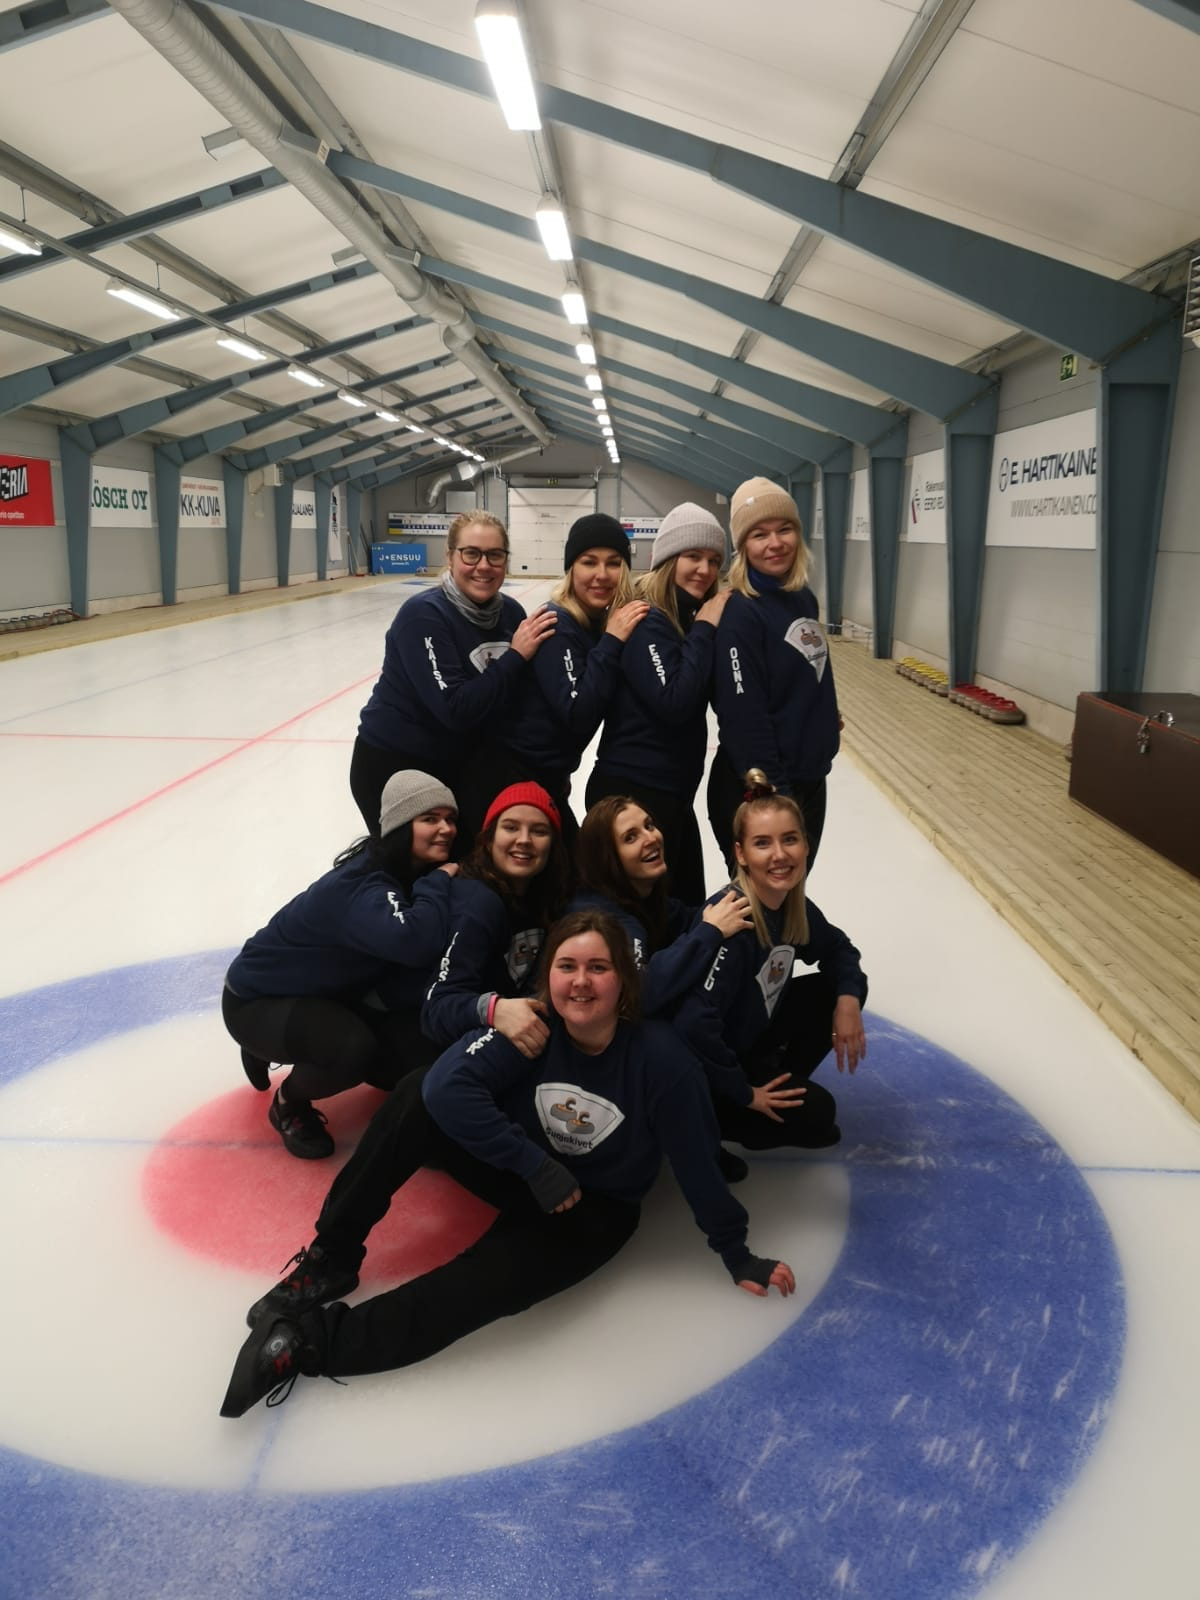 Student teams celebrating after a good season (Photo: Joensuu Curling Club)